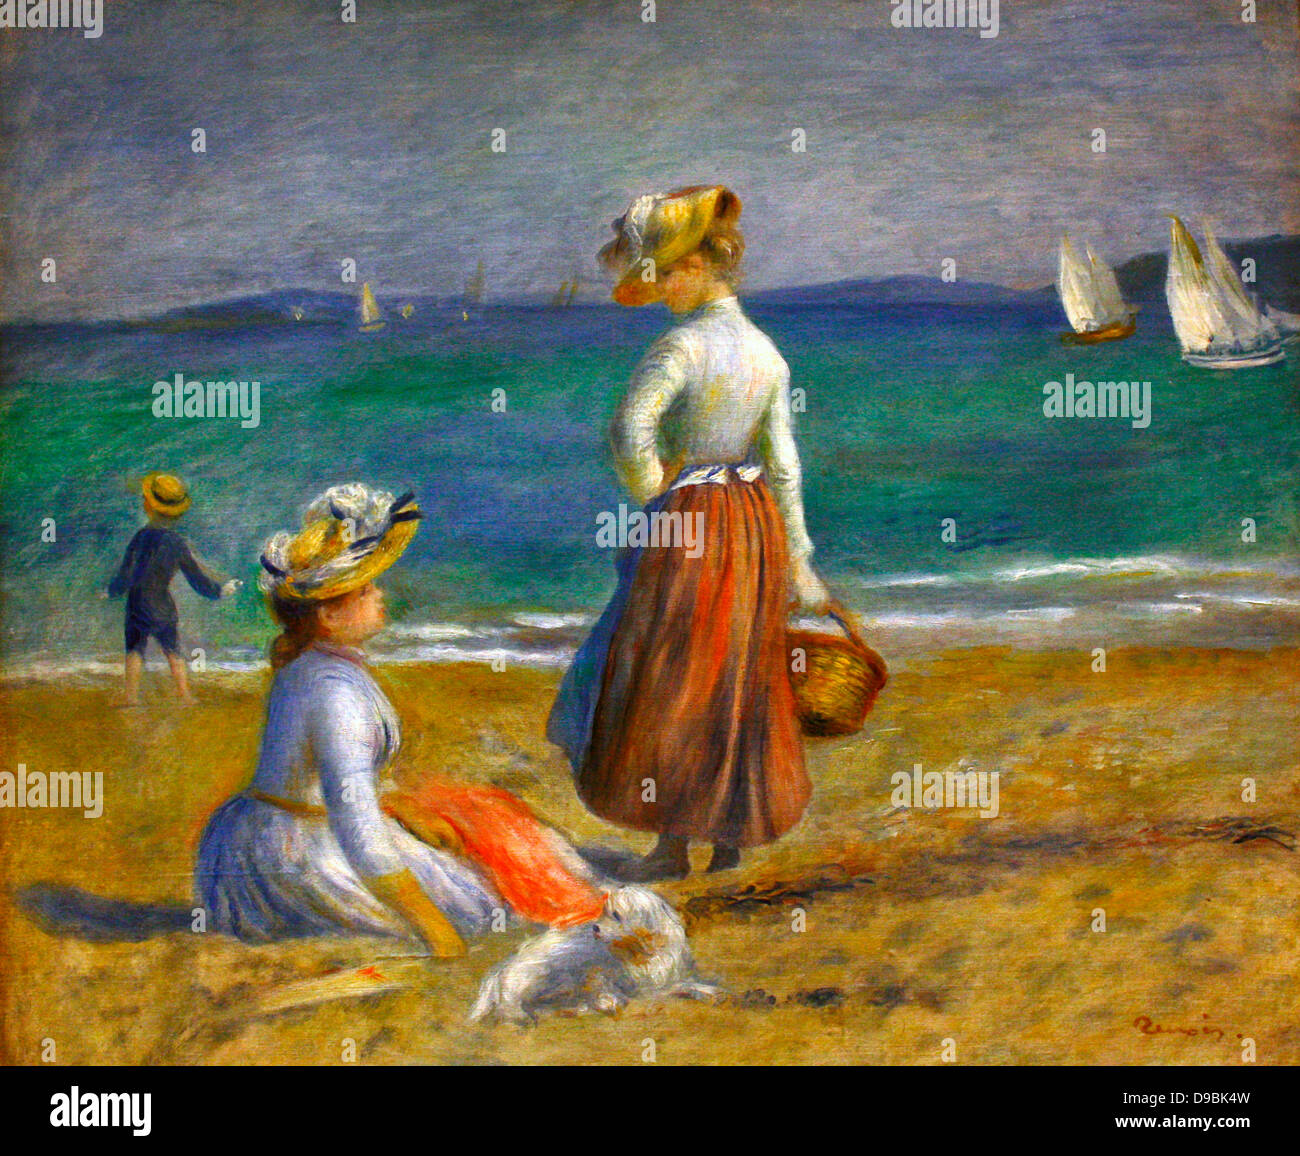 Pierre-Auguste Renior, French 1841-1919.  Figures on the Beach. - Stock Image